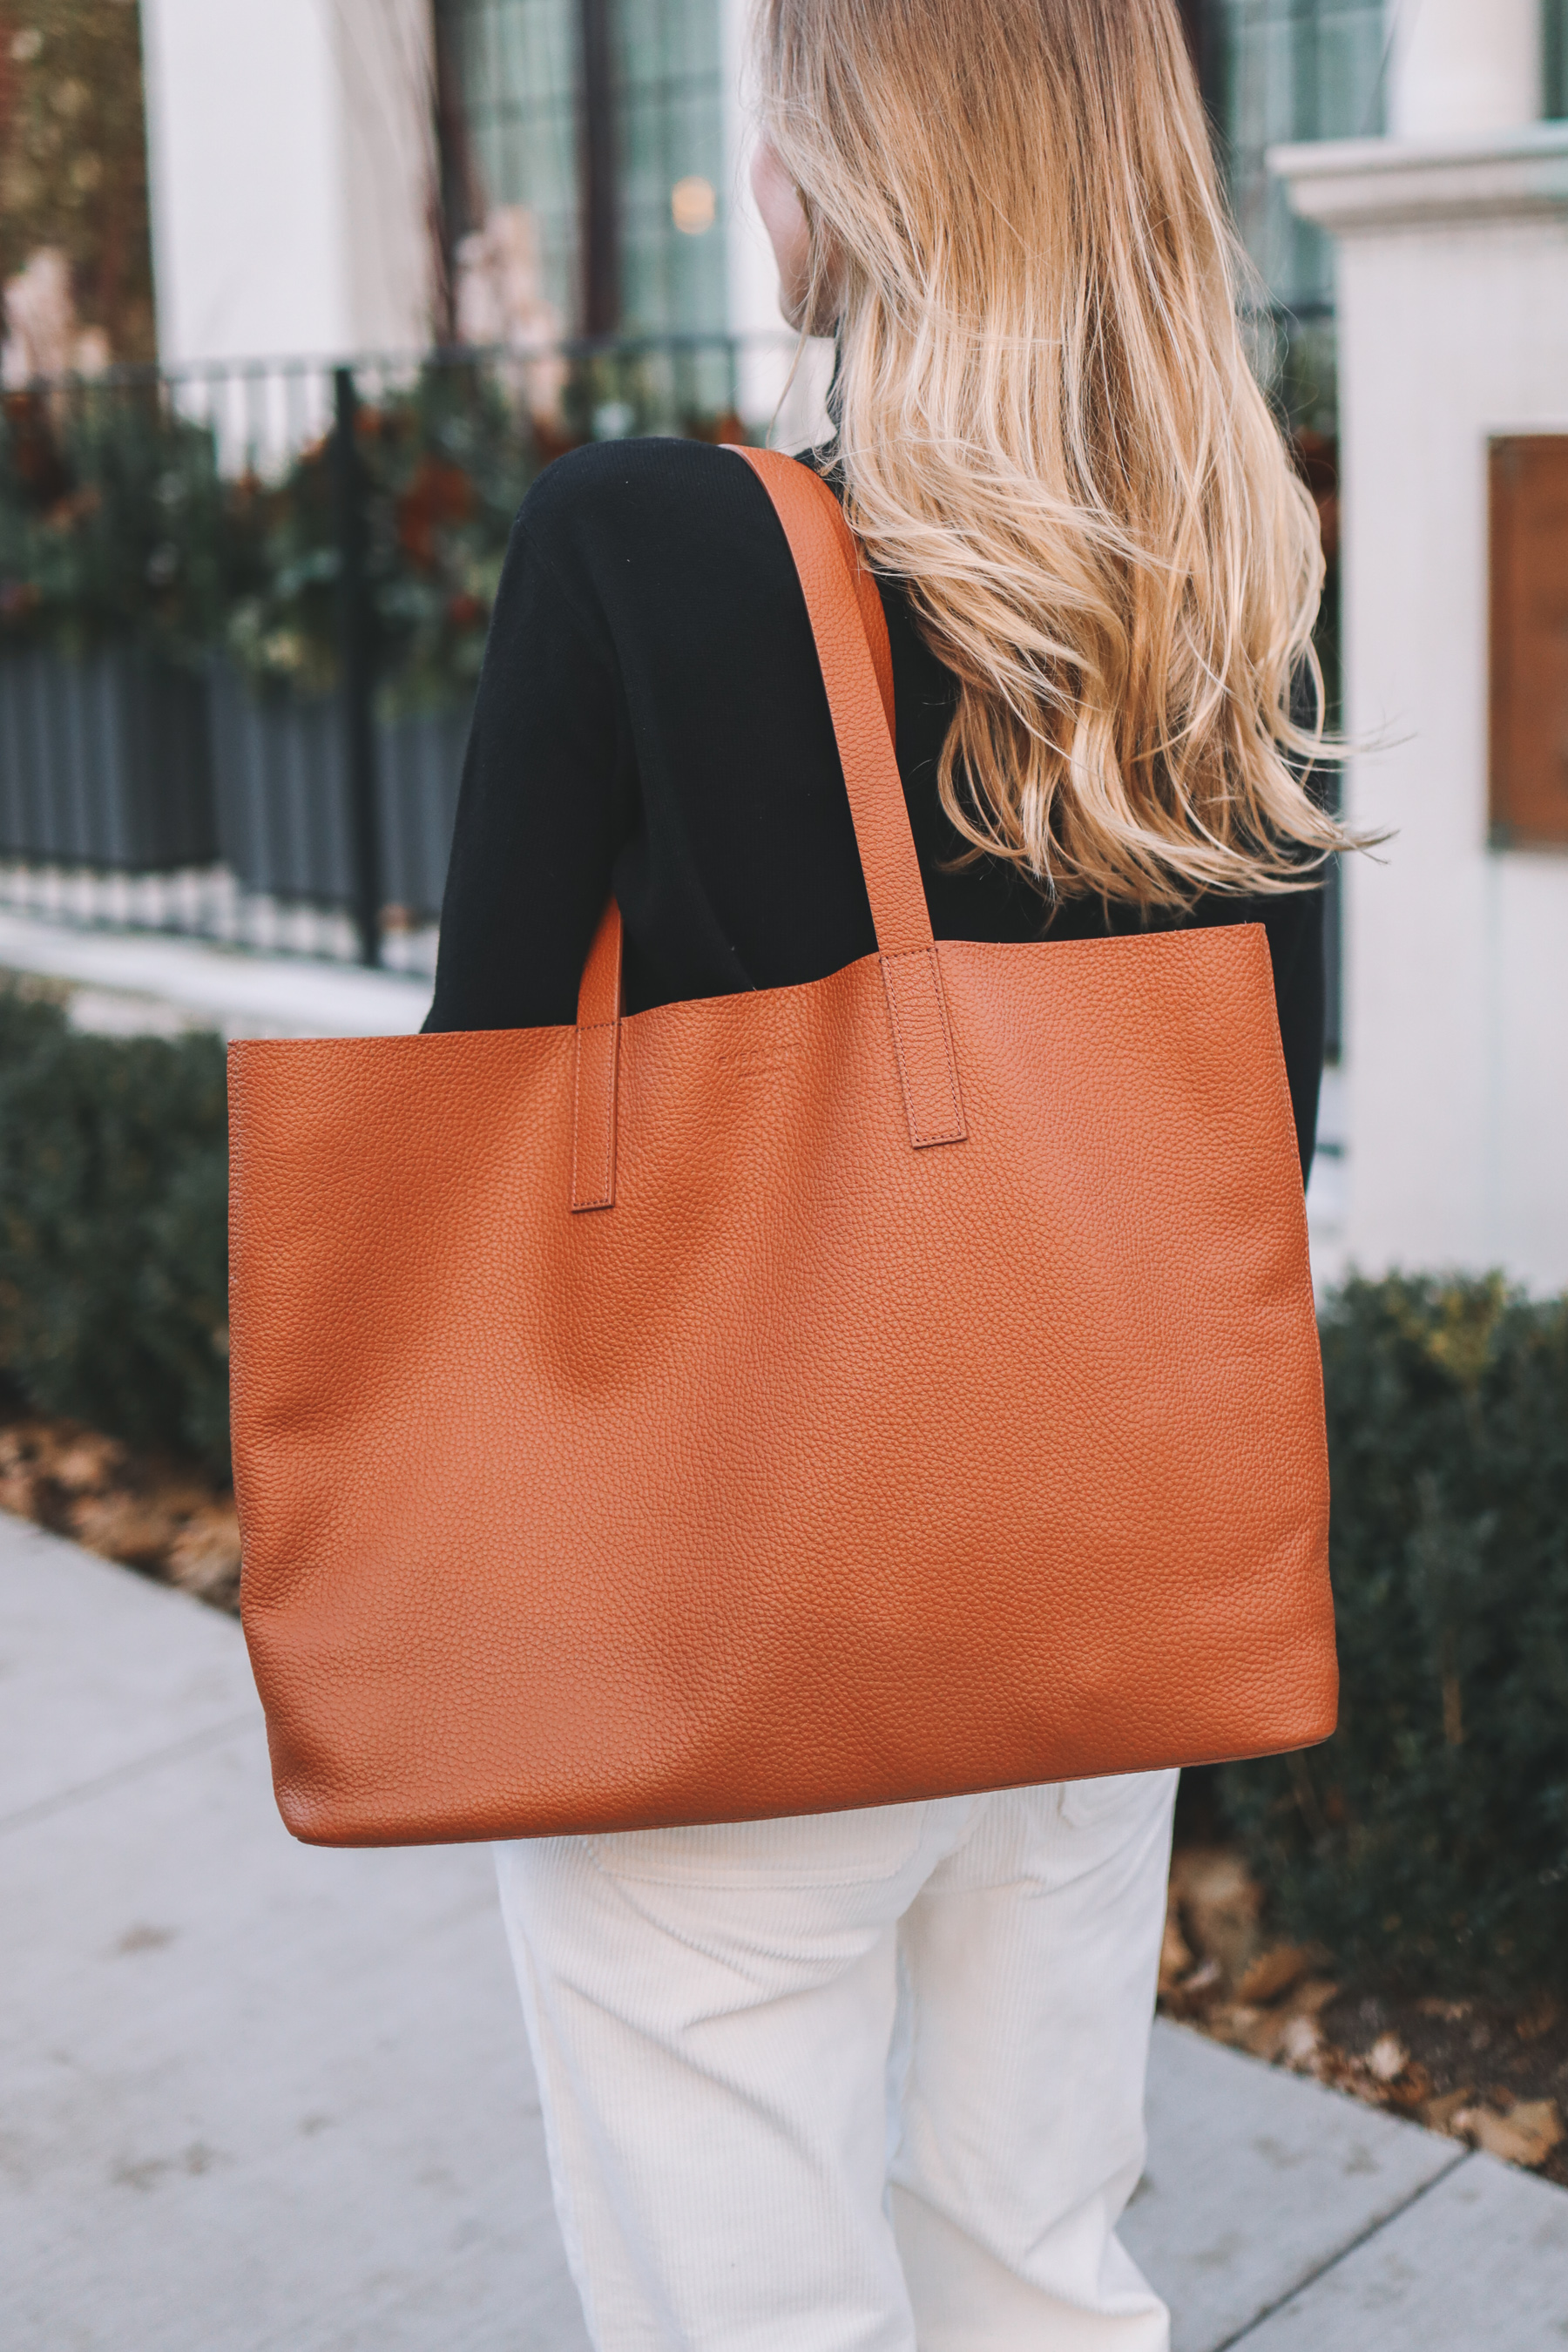 Everlane Soft Day Tote